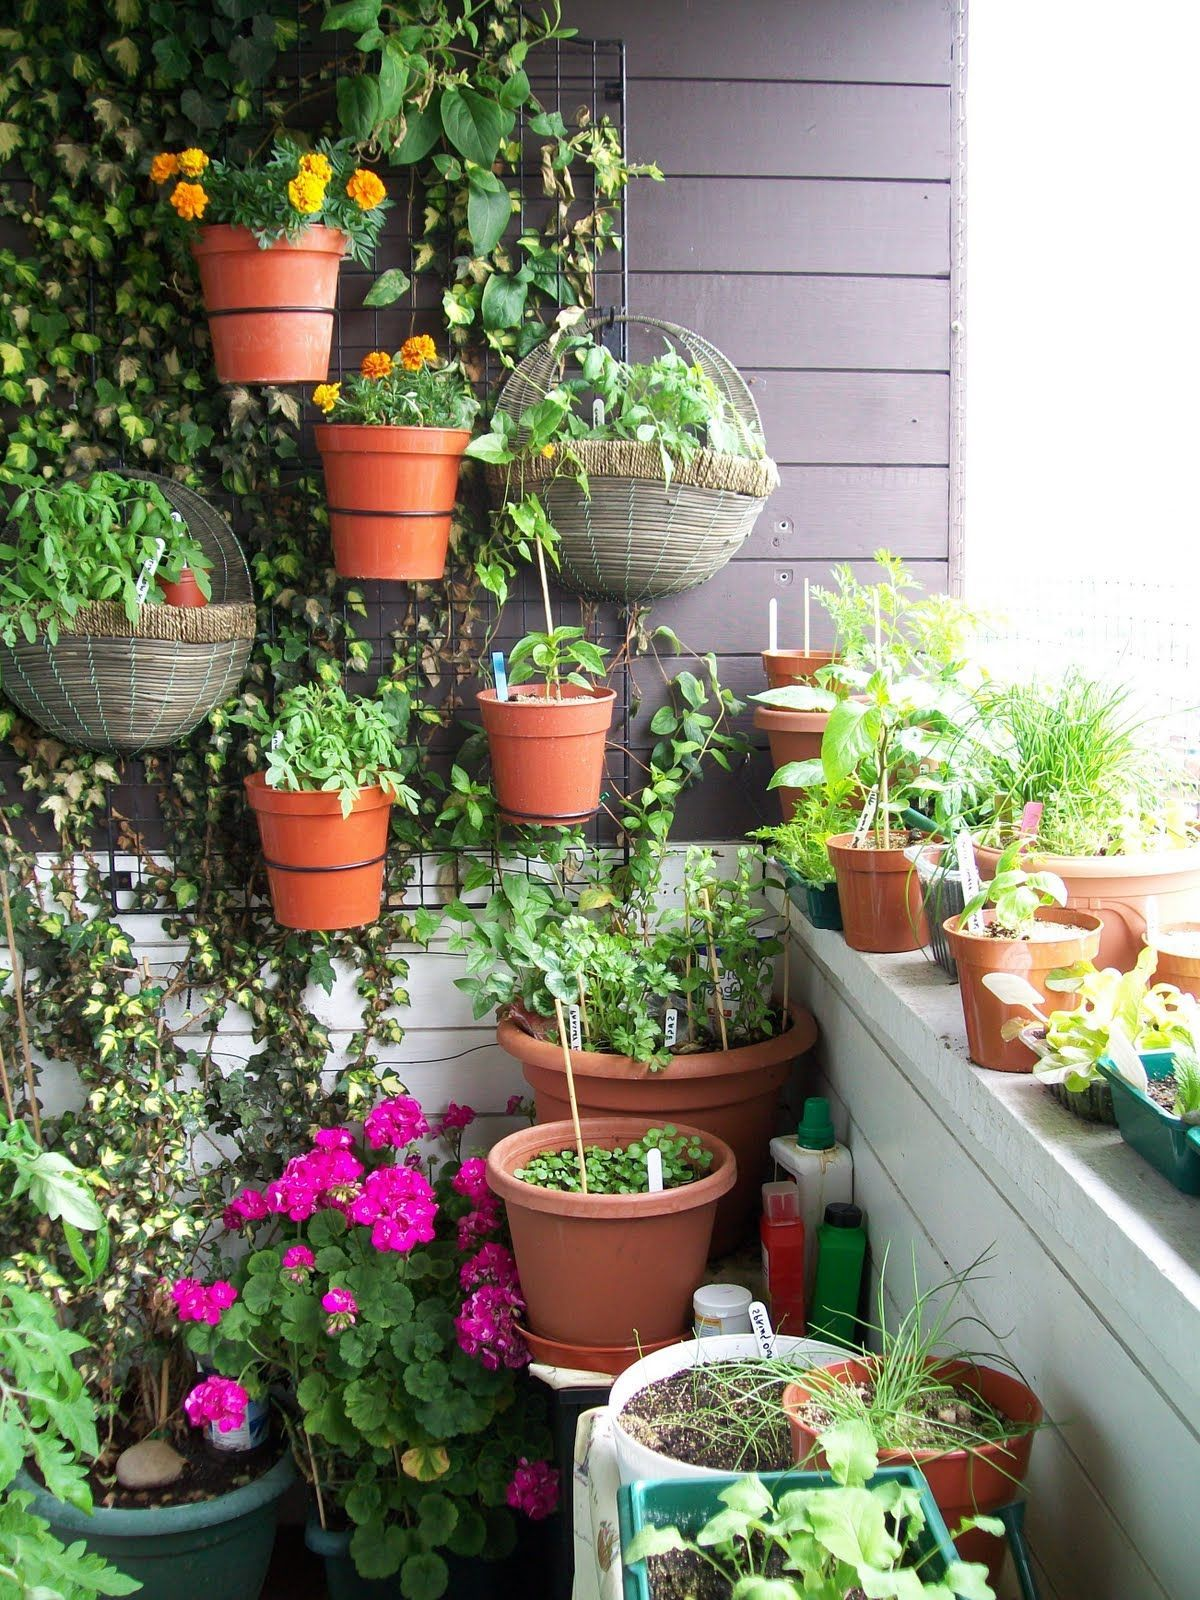 Garage beautiful small terrace garden ideas good terrace garden with wall planting